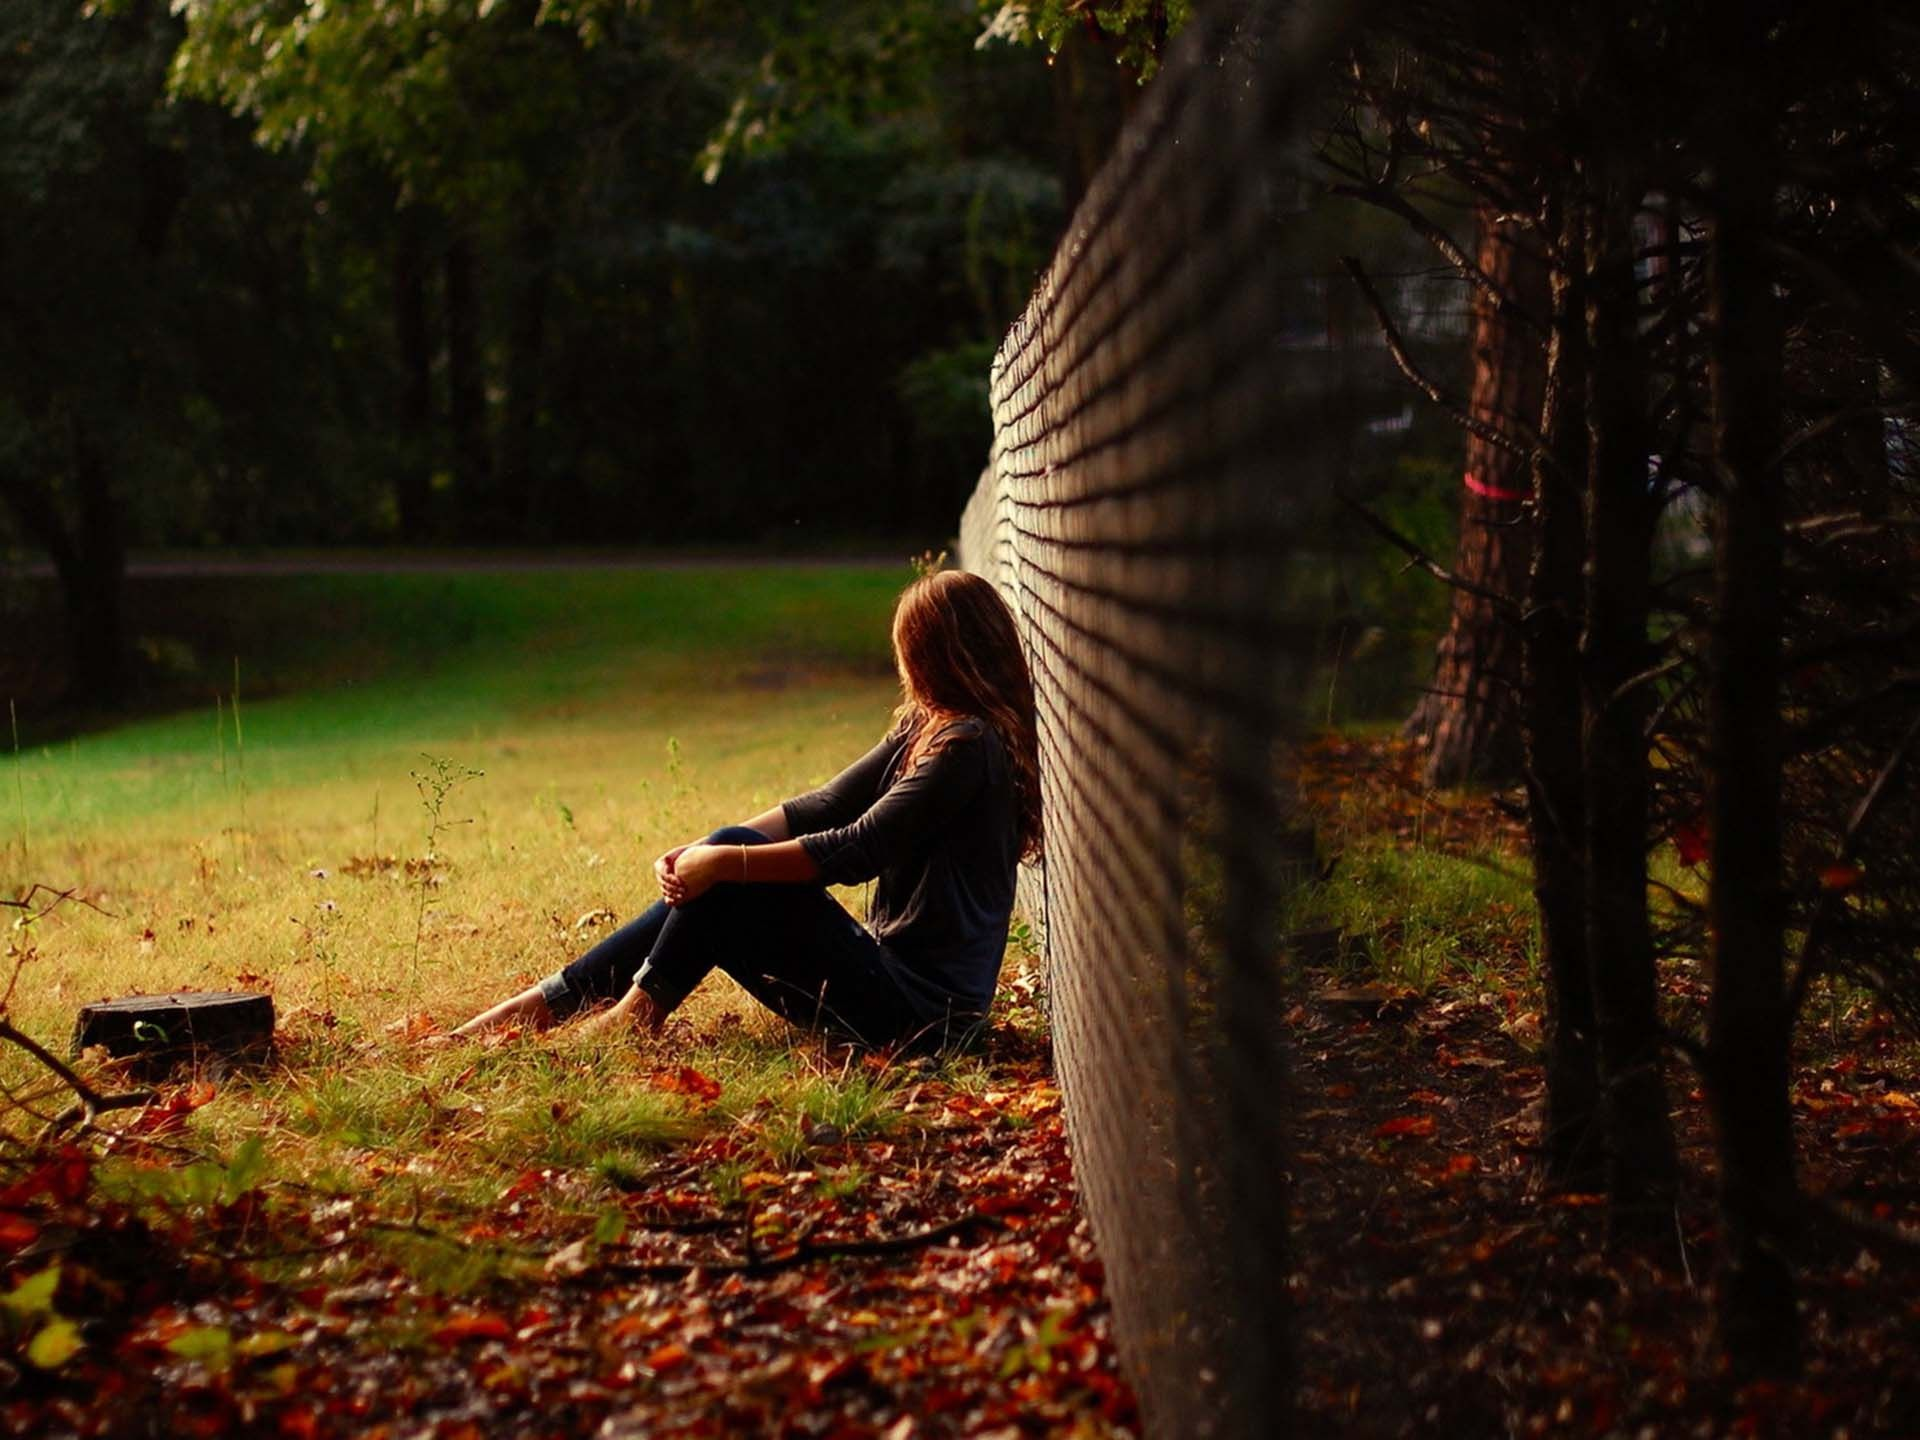 Lonely girl sad girl Breakup Freeeasypics Pinterest Autumn day, Sad girl and Lonely girl